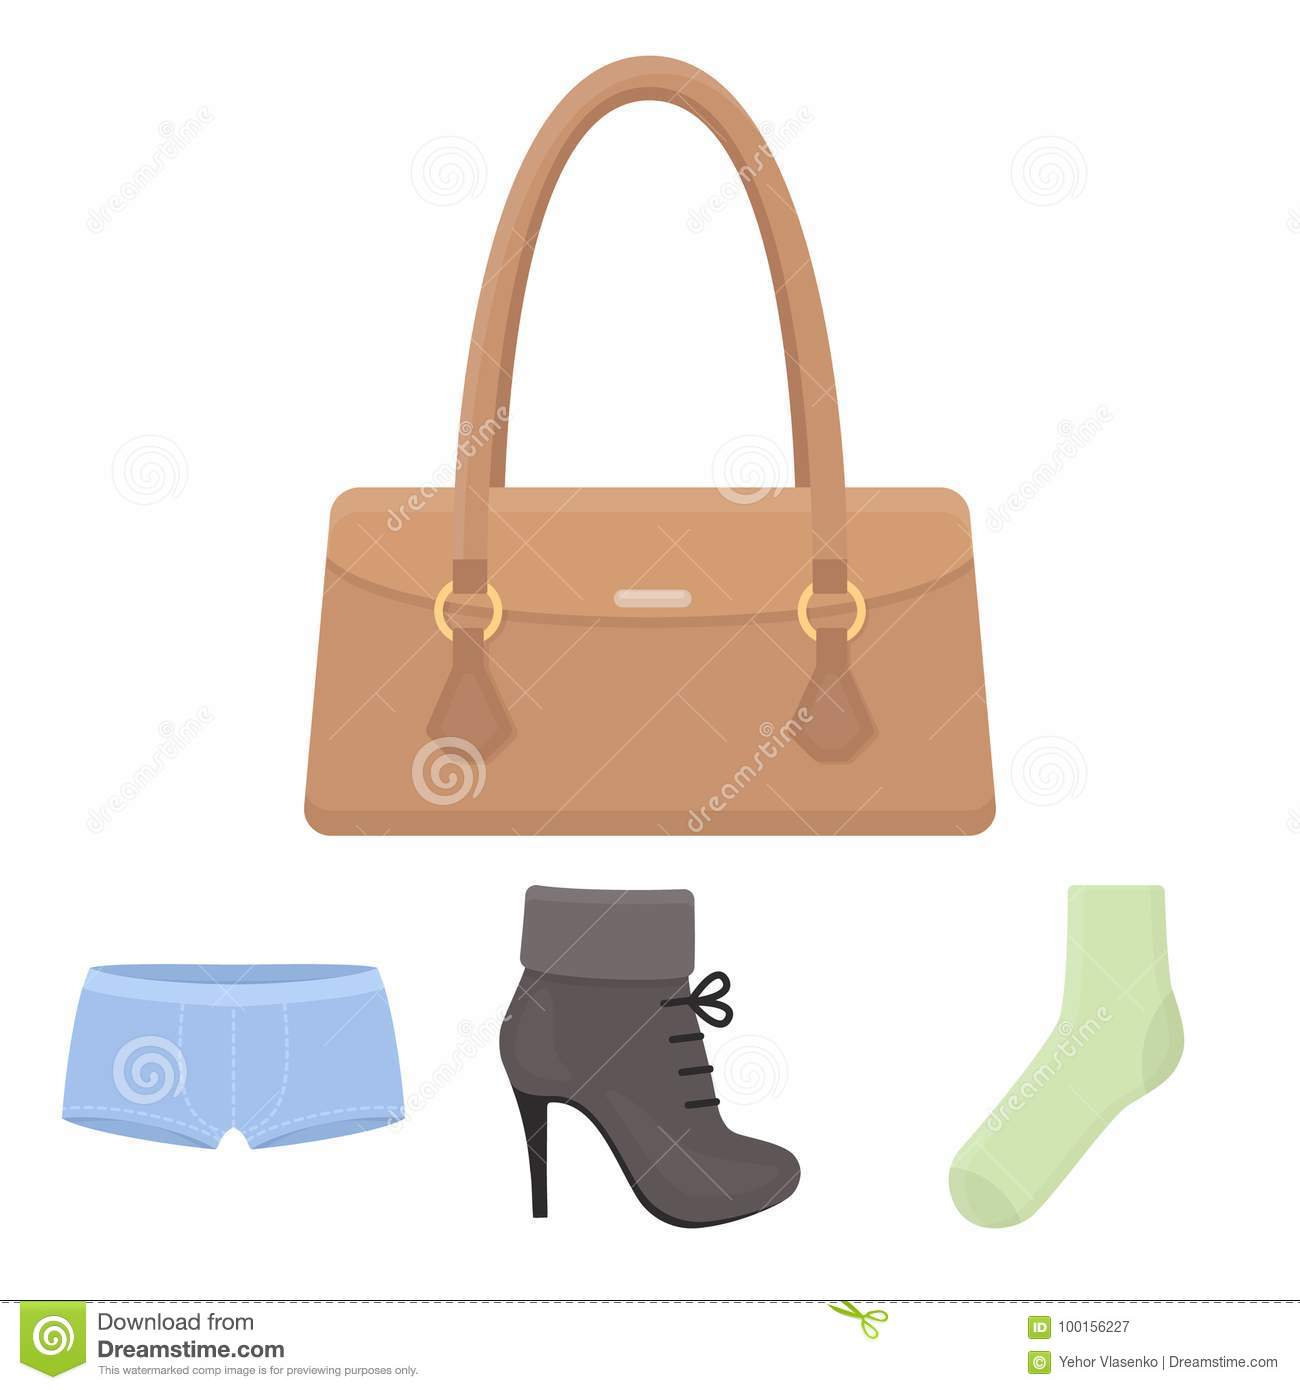 765adbb404a49 Women`s Boots, Socks, Shorts, Ladies` Bag. Clothing Set Collection ...